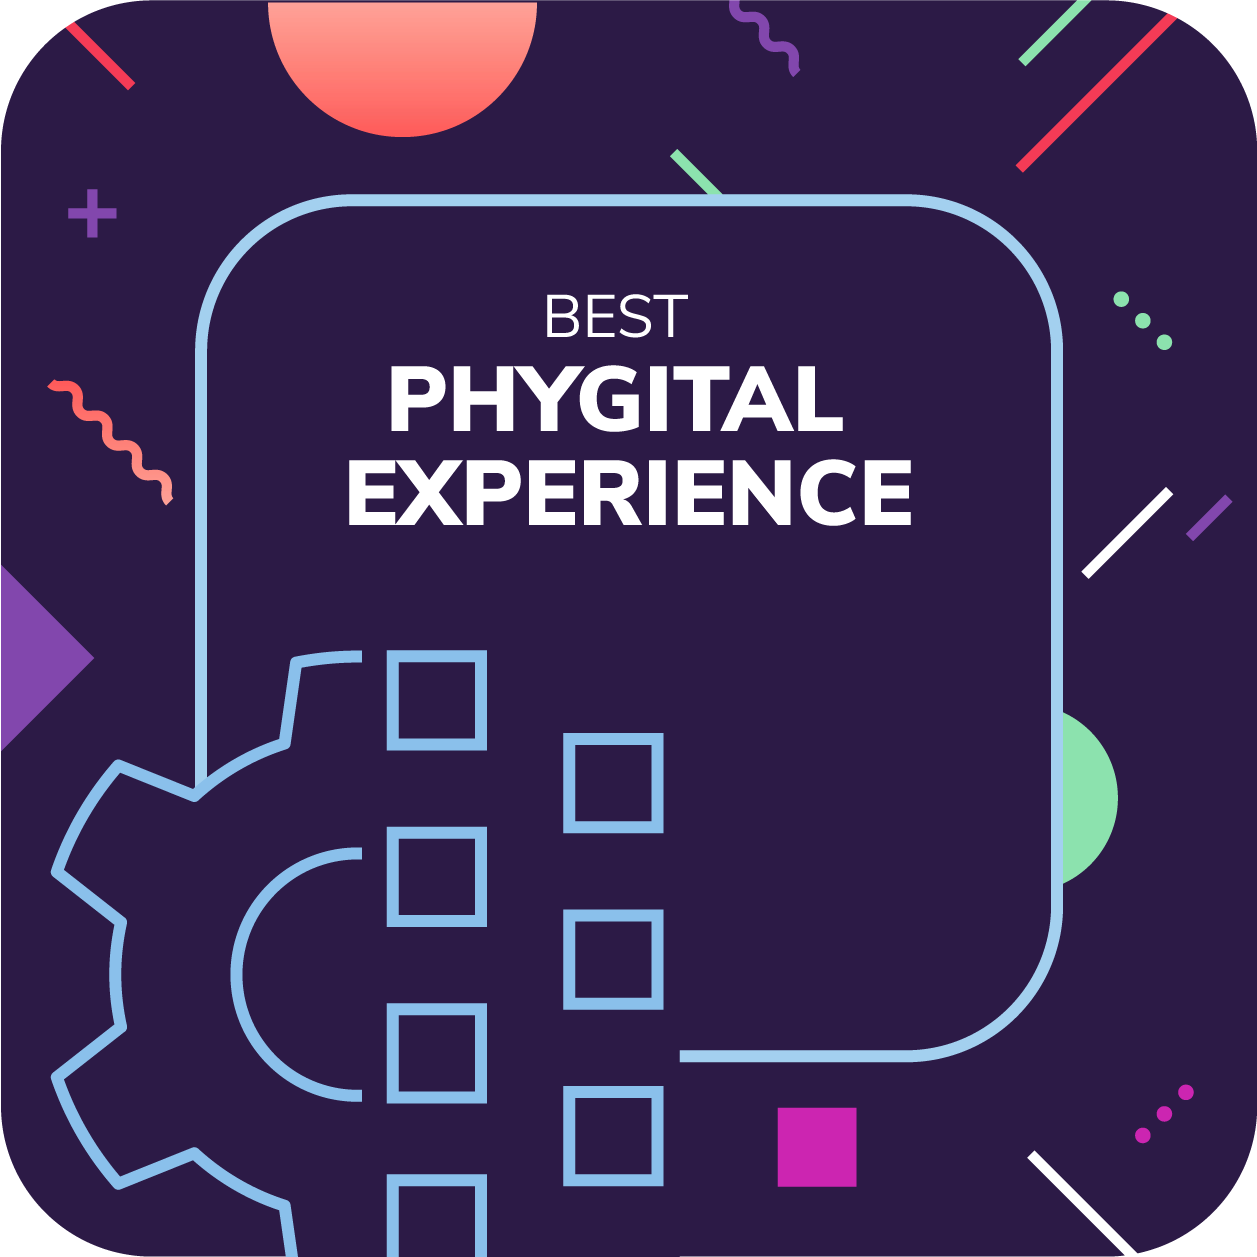 Best Phygital Experience